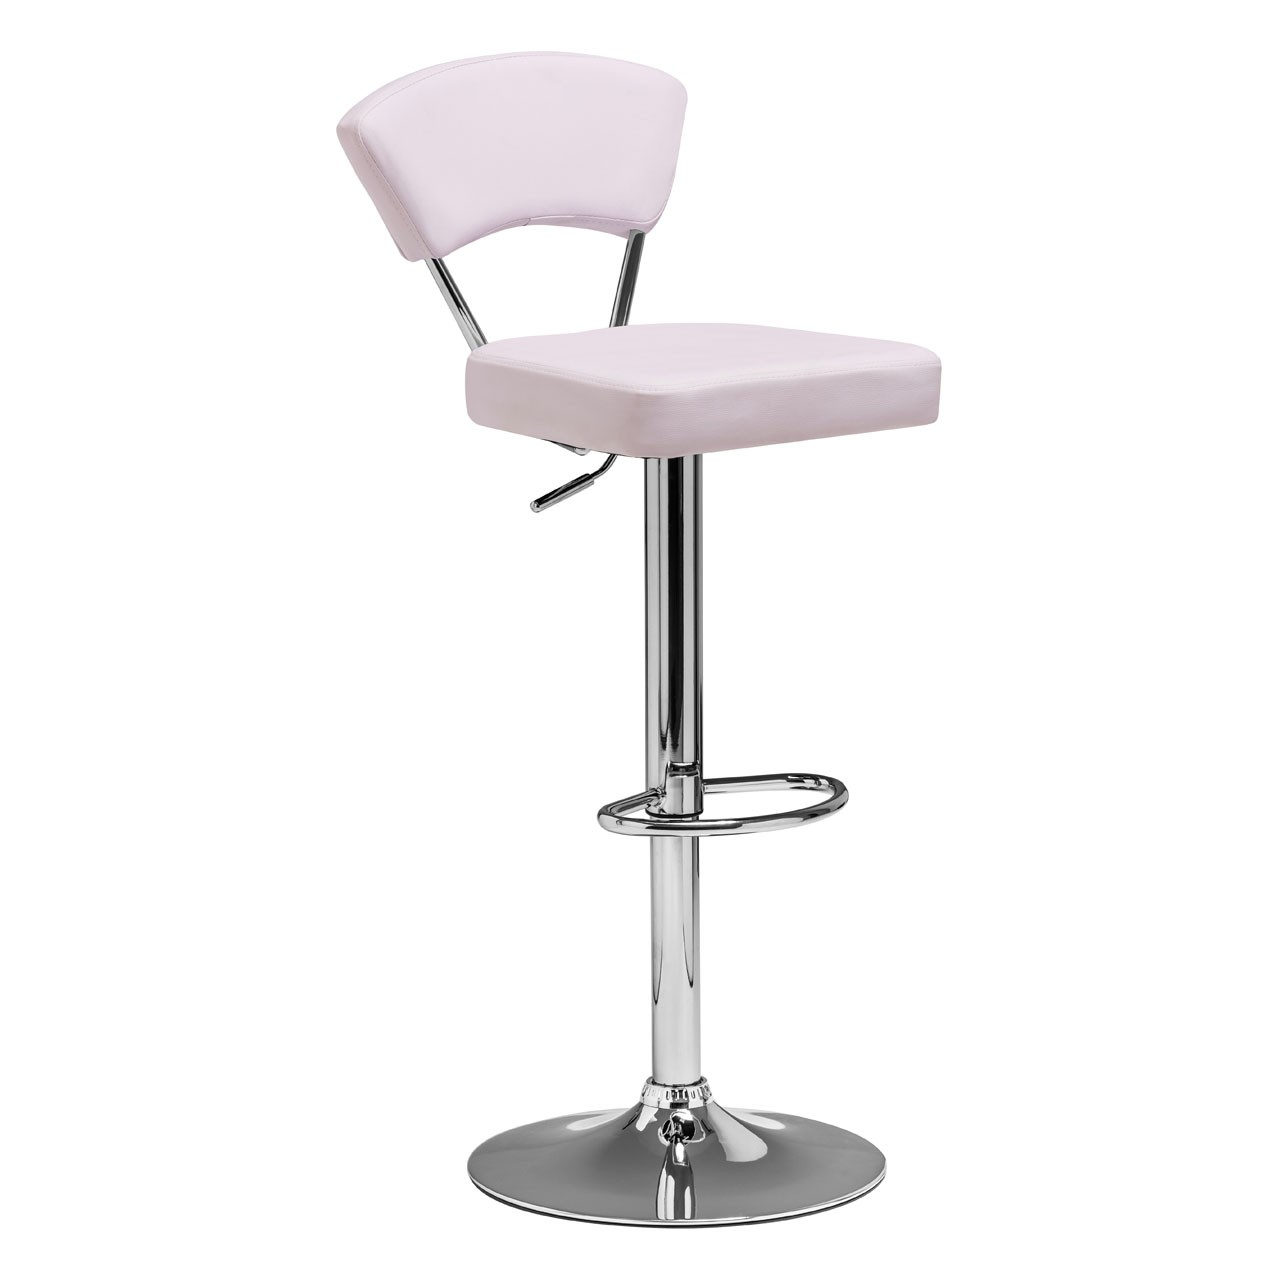 2 x Anya Bar Chair Leather Effect Chrome Finish Base White